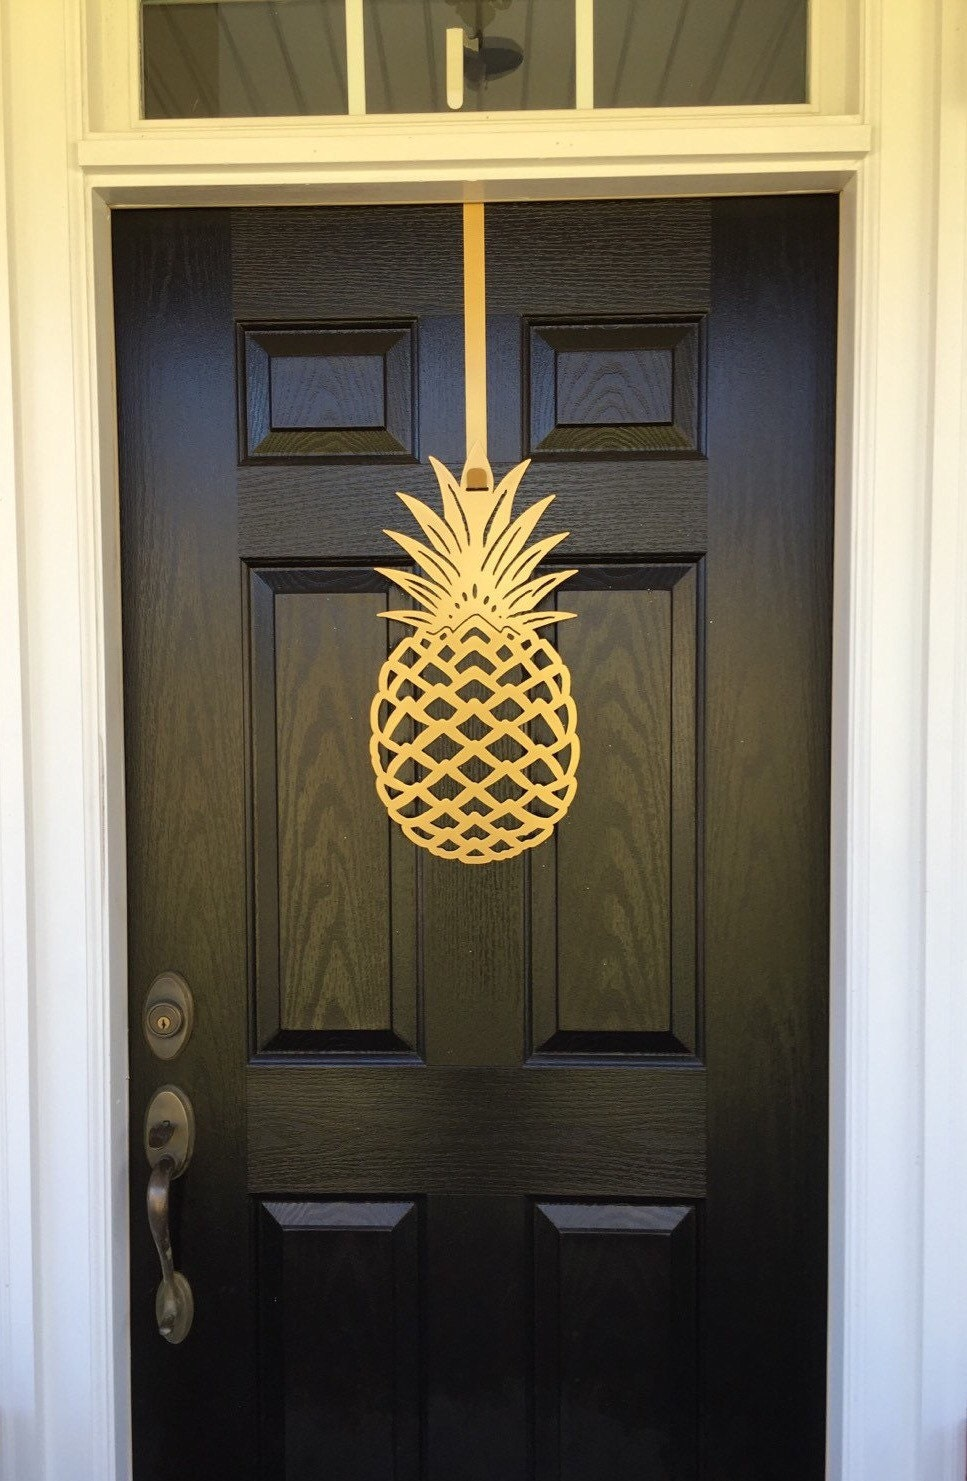 Pineapple Front Door Wreath 2 Sizes To Chose From With